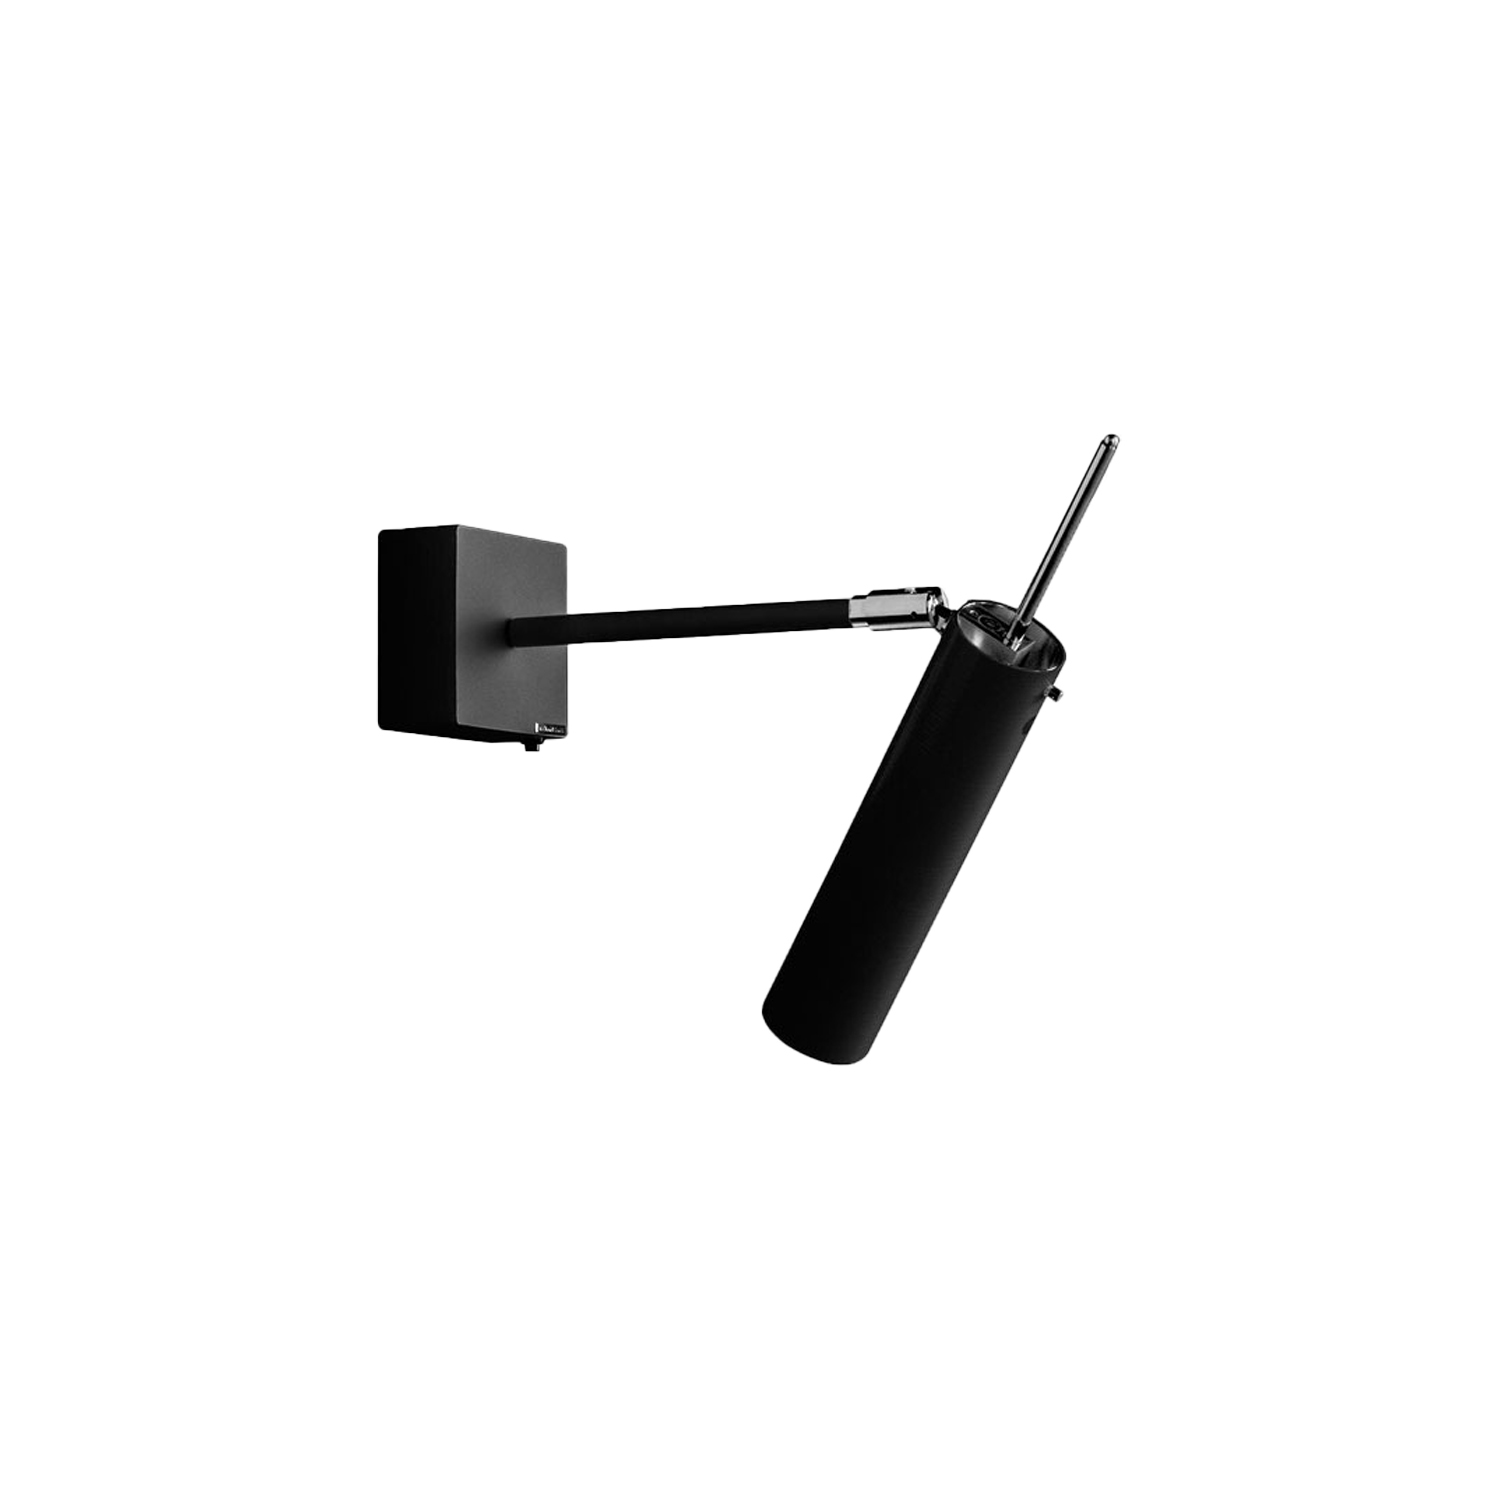 Lucenera 502 Wall Lamp - Lucenera was developed from a simple concept: taking the limelight off the lamp and giving centre stage to the light, depending on the subject illuminated. To achieve this, Enzo Catellani used a black carbon tube and flexible support. The shape is the simplest one possible; the object is the utmost in versatility. | Matter of Stuff